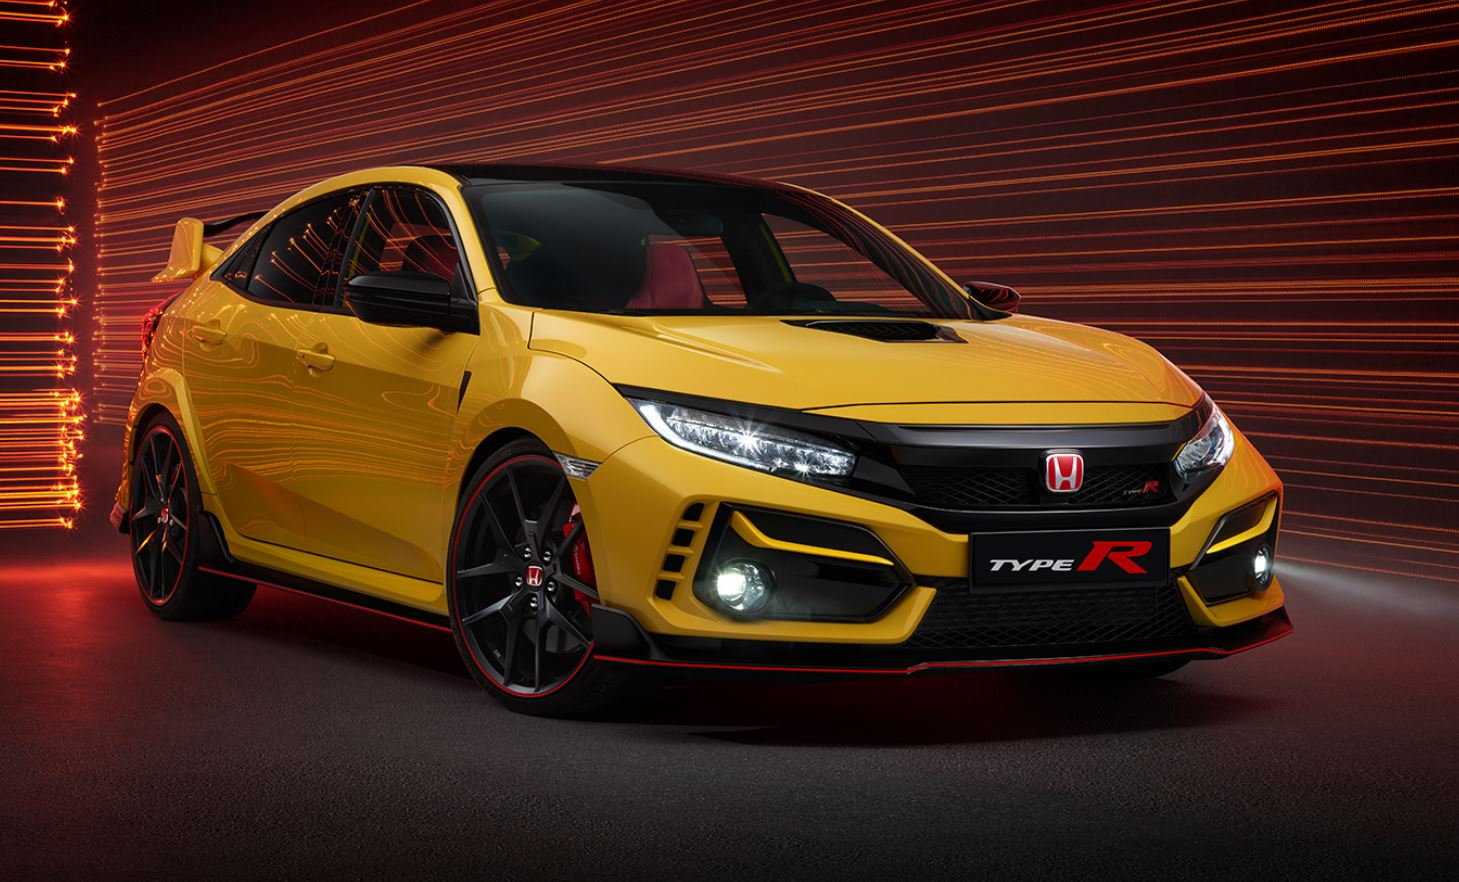 Is The Honda Civic Type R Awd Garage Dreams